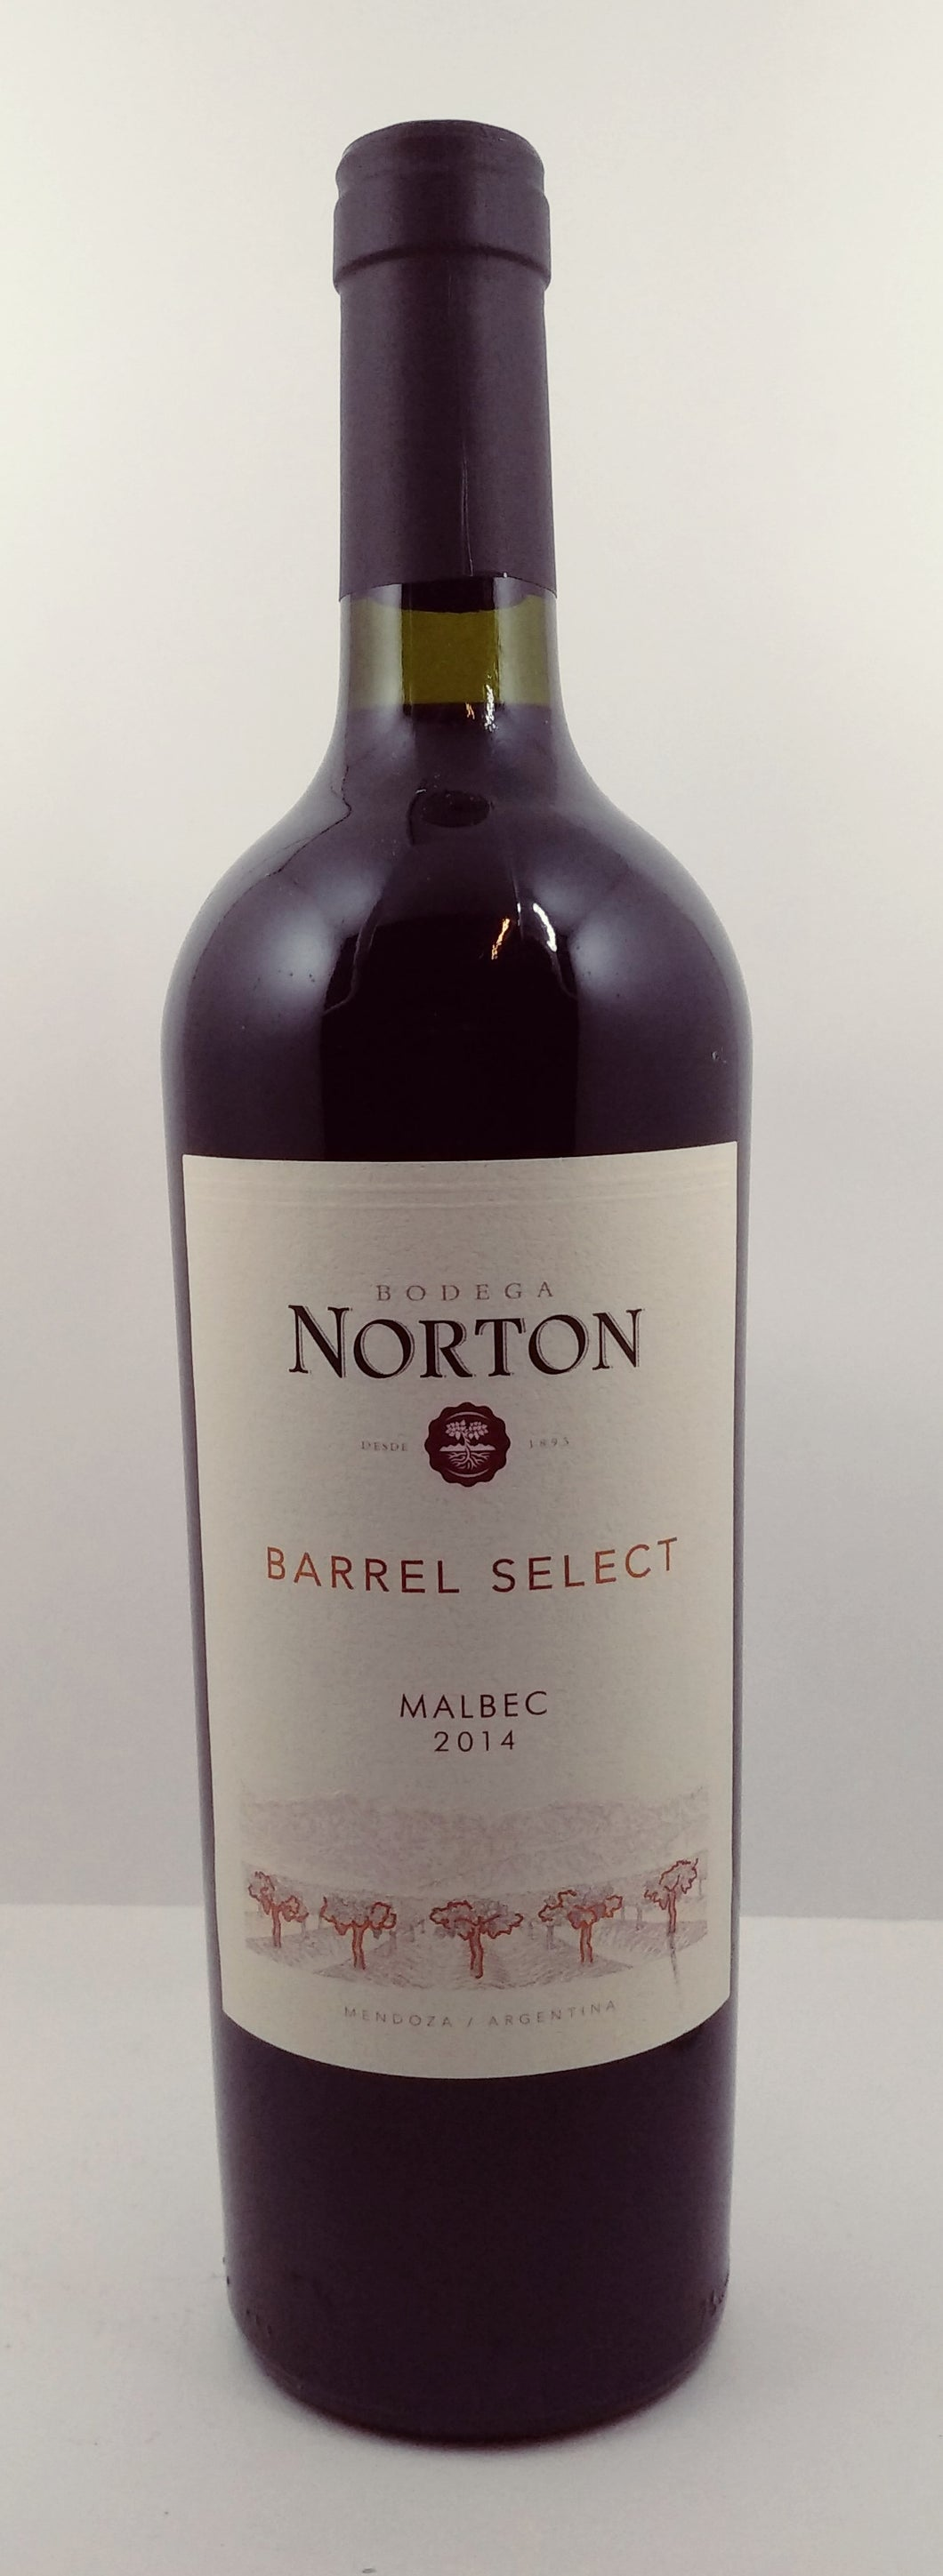 2014 Bodega Norton Barrel Select Malbec